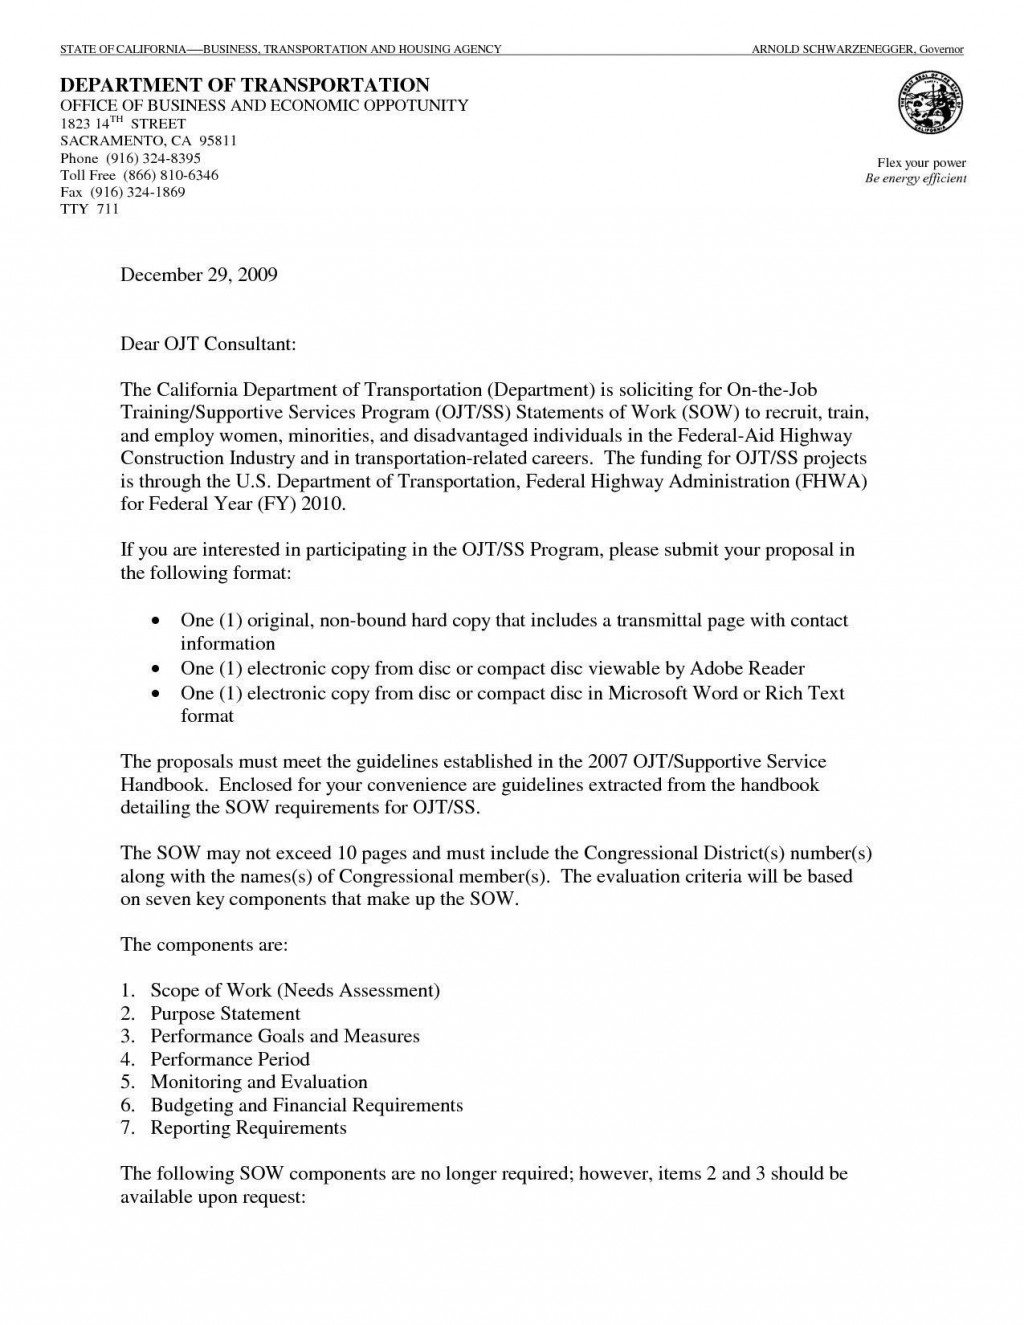 001 Outstanding Microsoft Word Job Proposal Template Design Large